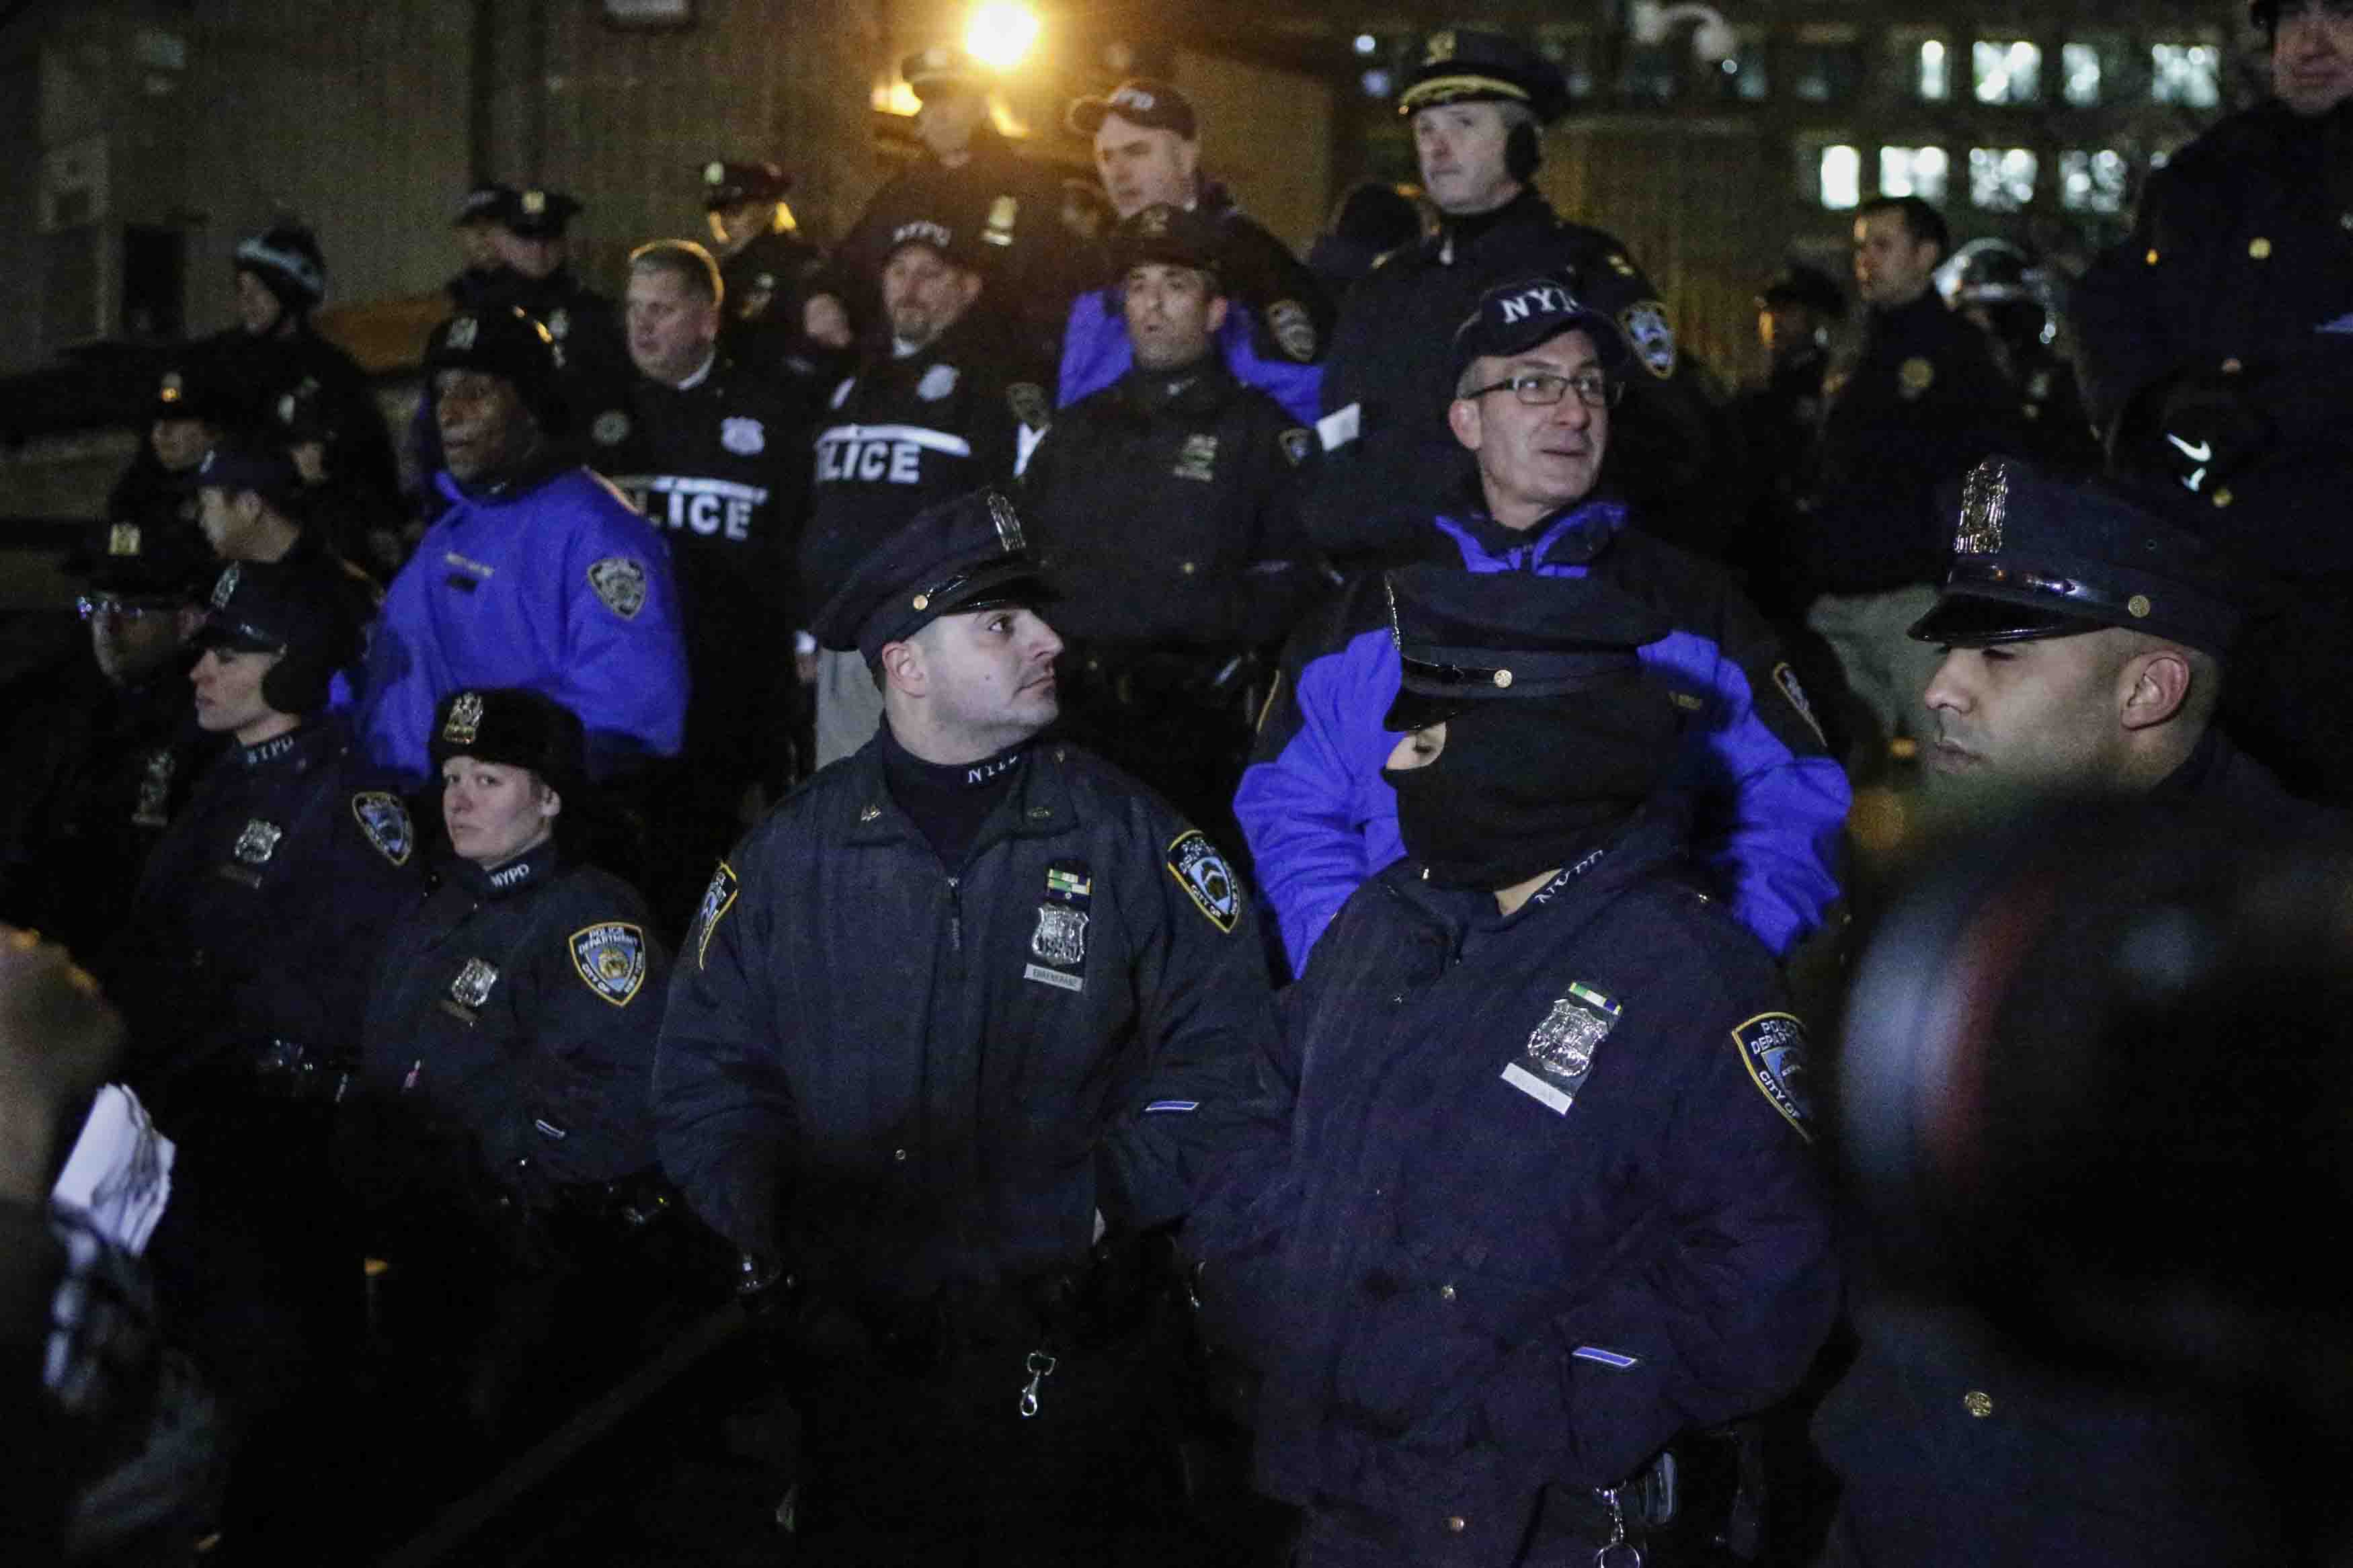 NYPD officers stand guard during the National March Against Police Violence, which was organized by National Action Network, at One Police Plaza on December 13, 2014 in New York City.